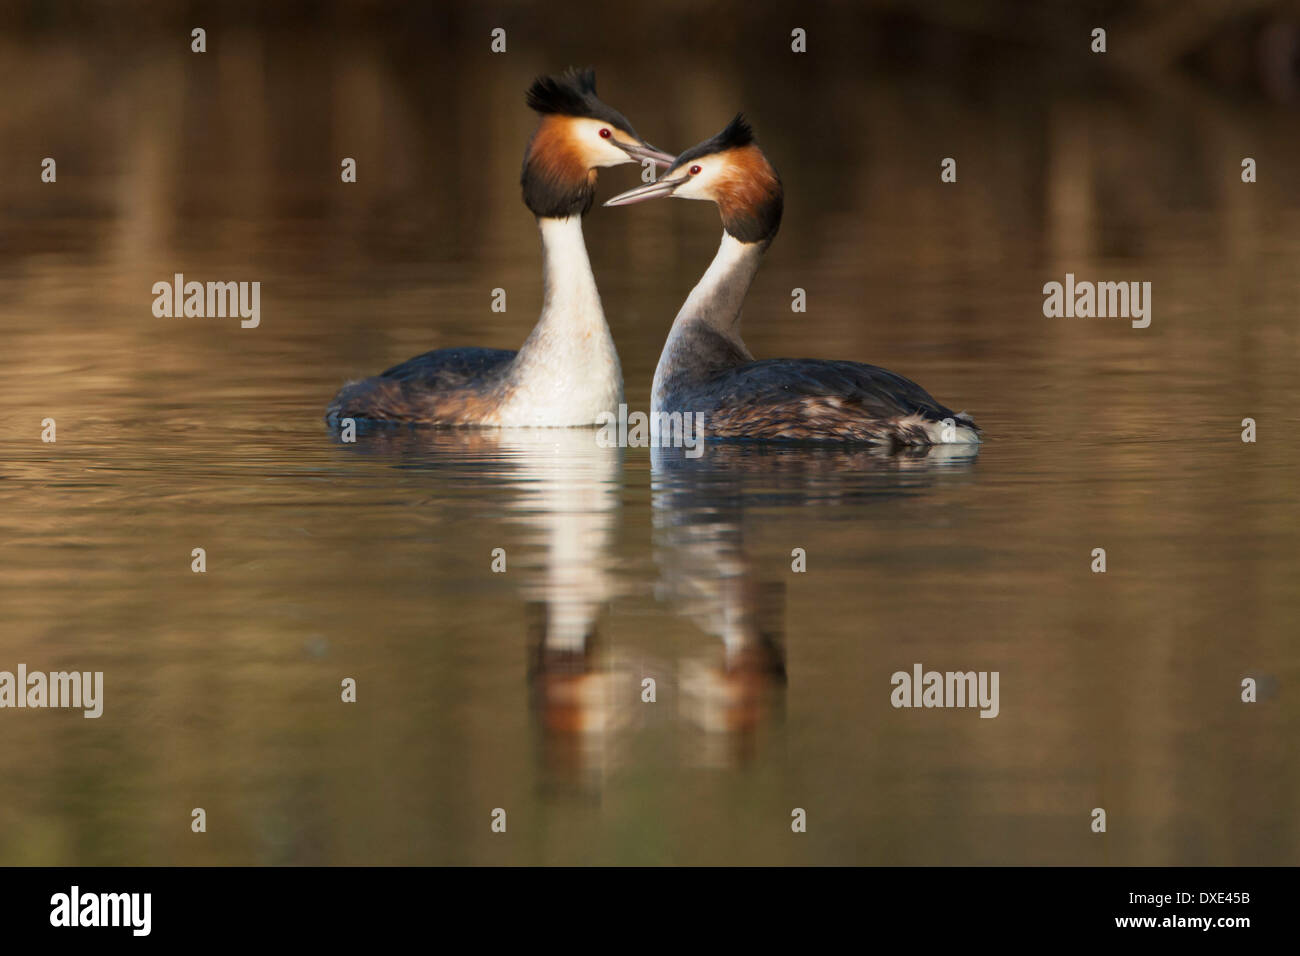 Courtship display of Great Crested Grebe pair with reflections of the birds on golden coloured water. Stock Photo